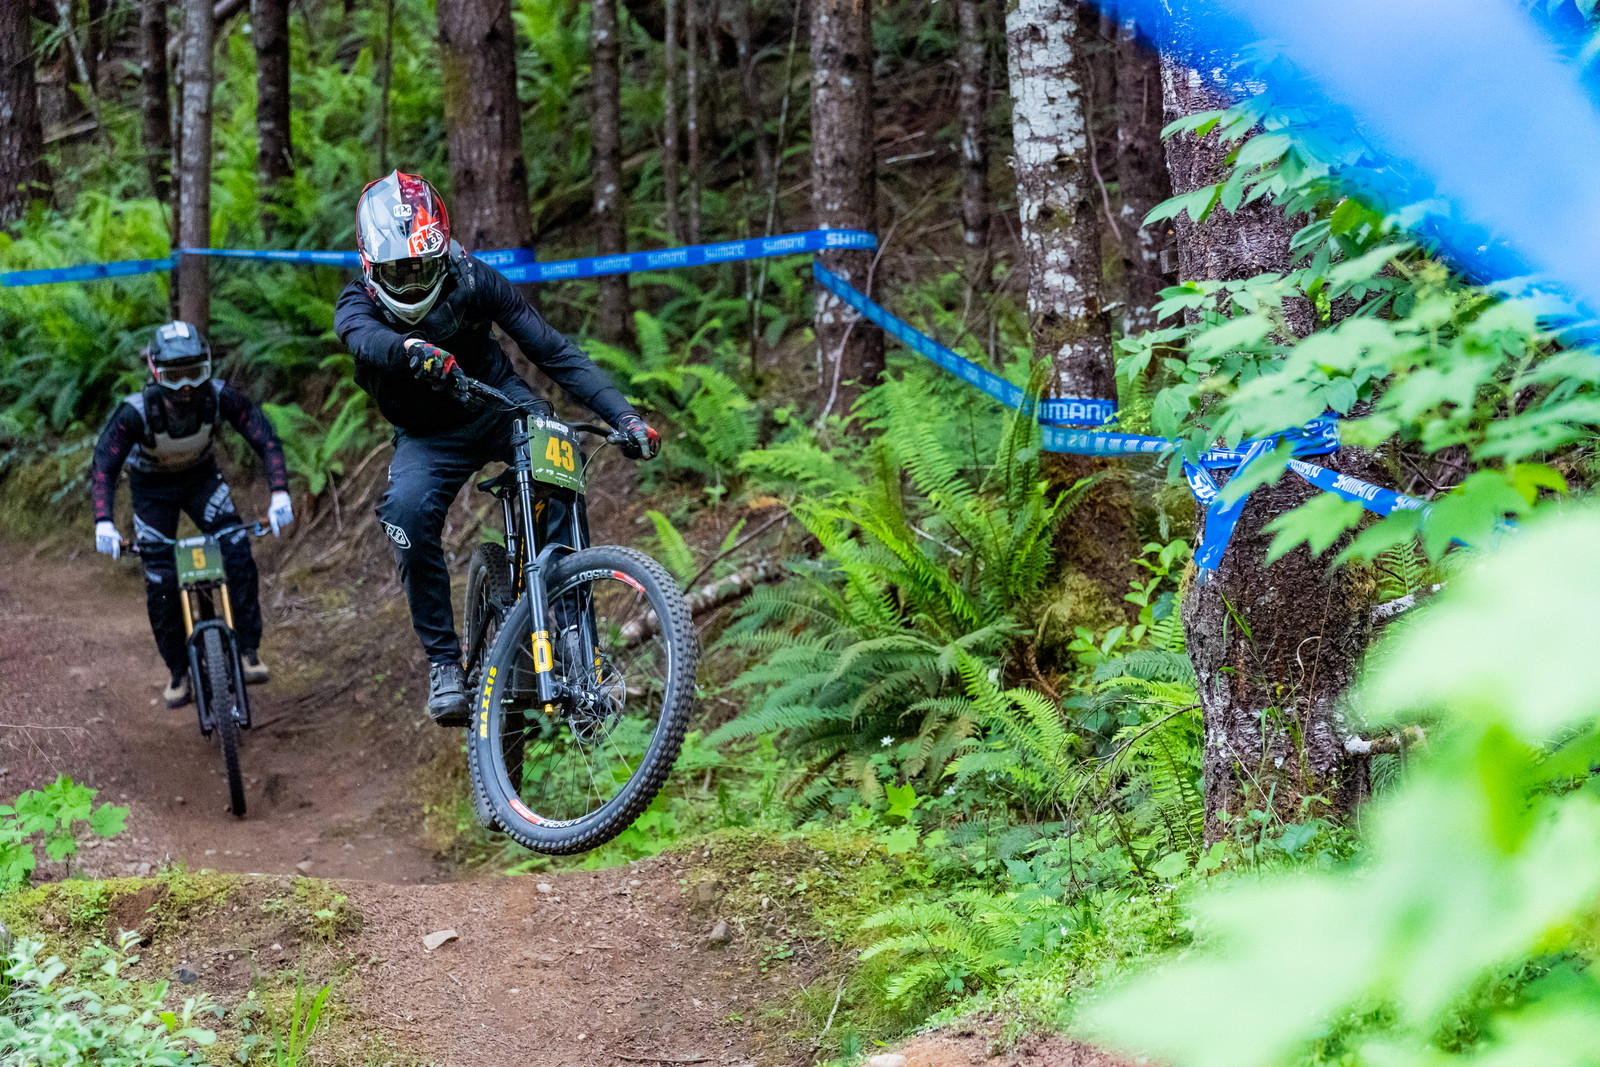 Chayve Williams with a little style during Pro practice. He ended up 11th on the weekend.